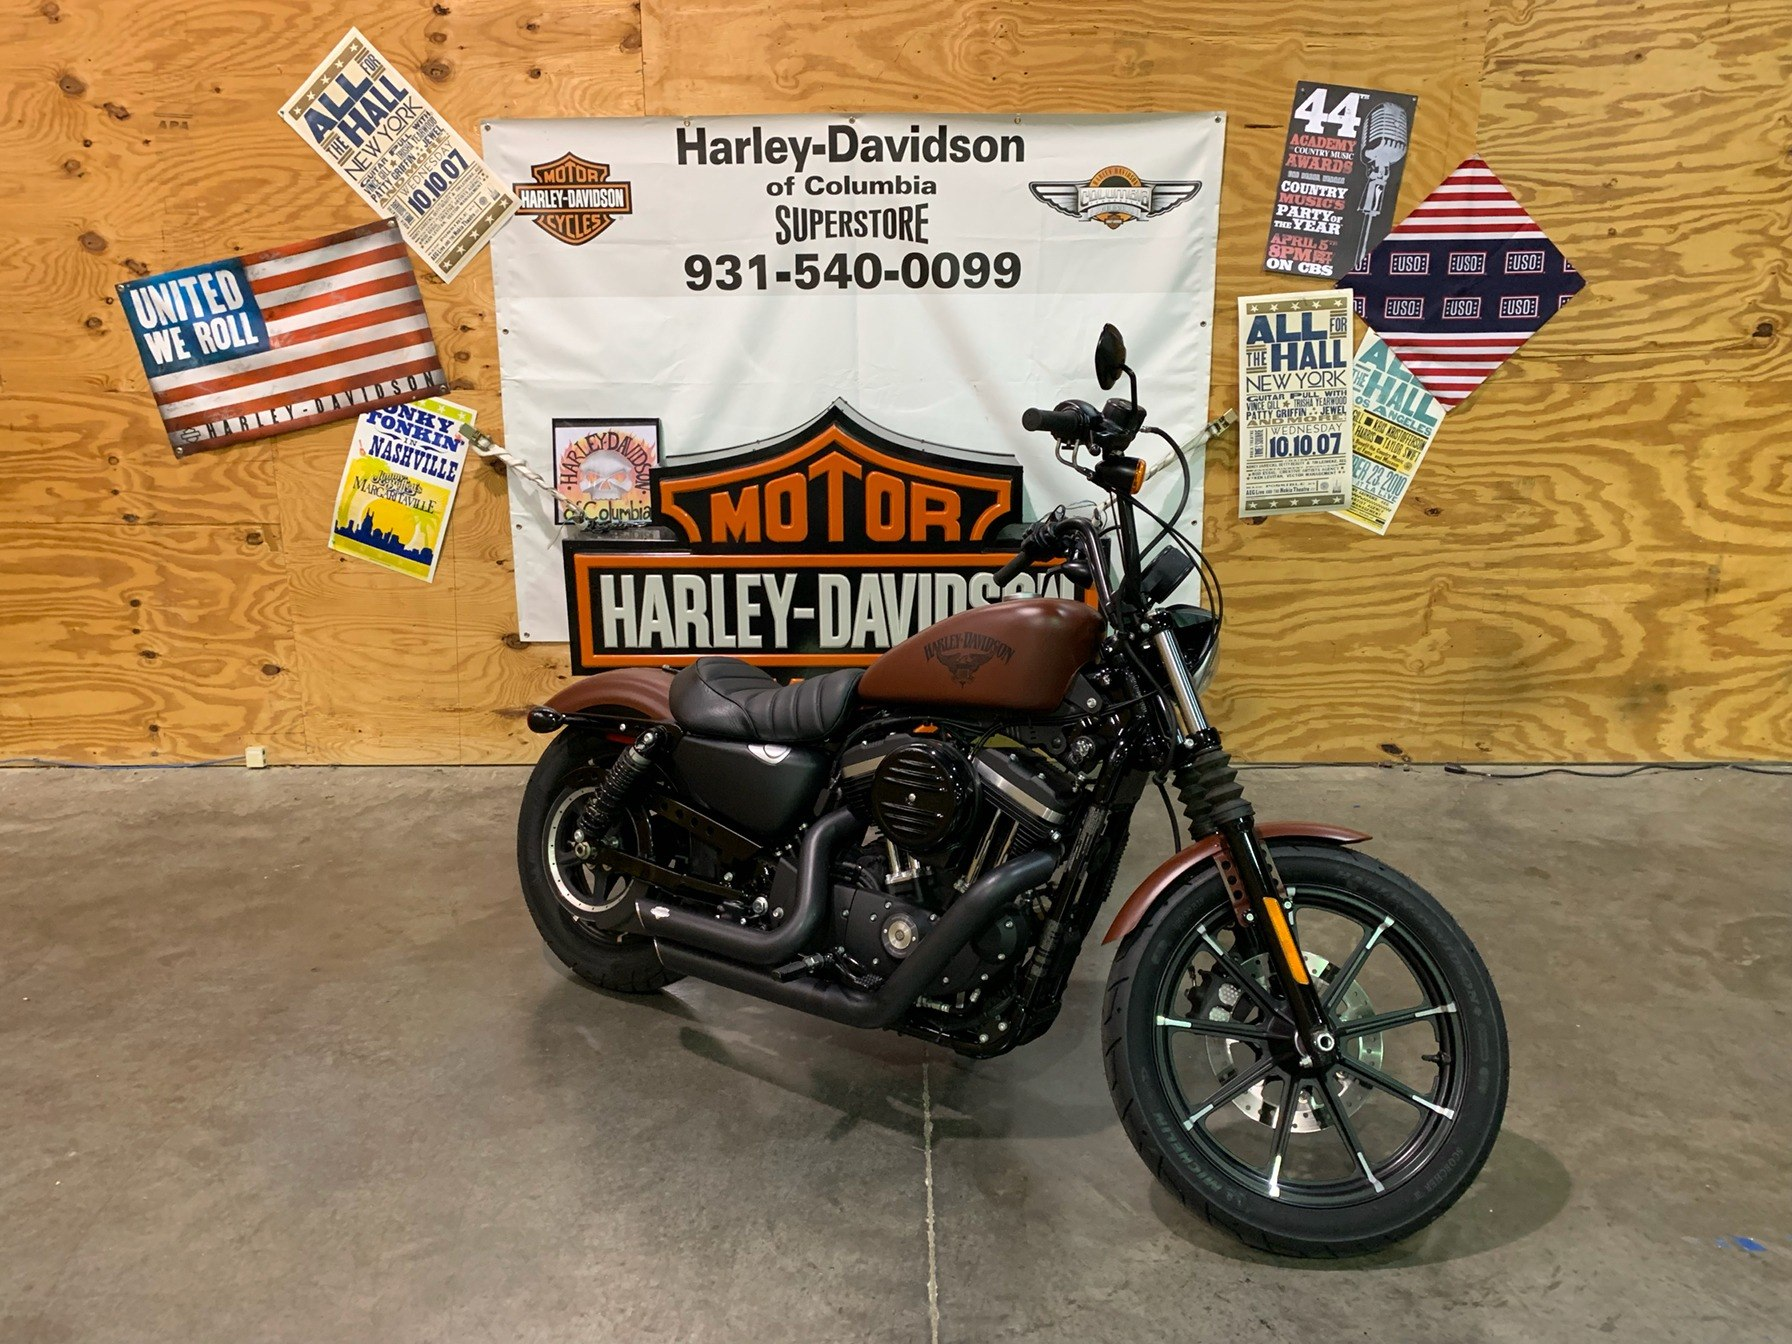 2017 Harley-Davidson XL883N in Columbia, Tennessee - Photo 2